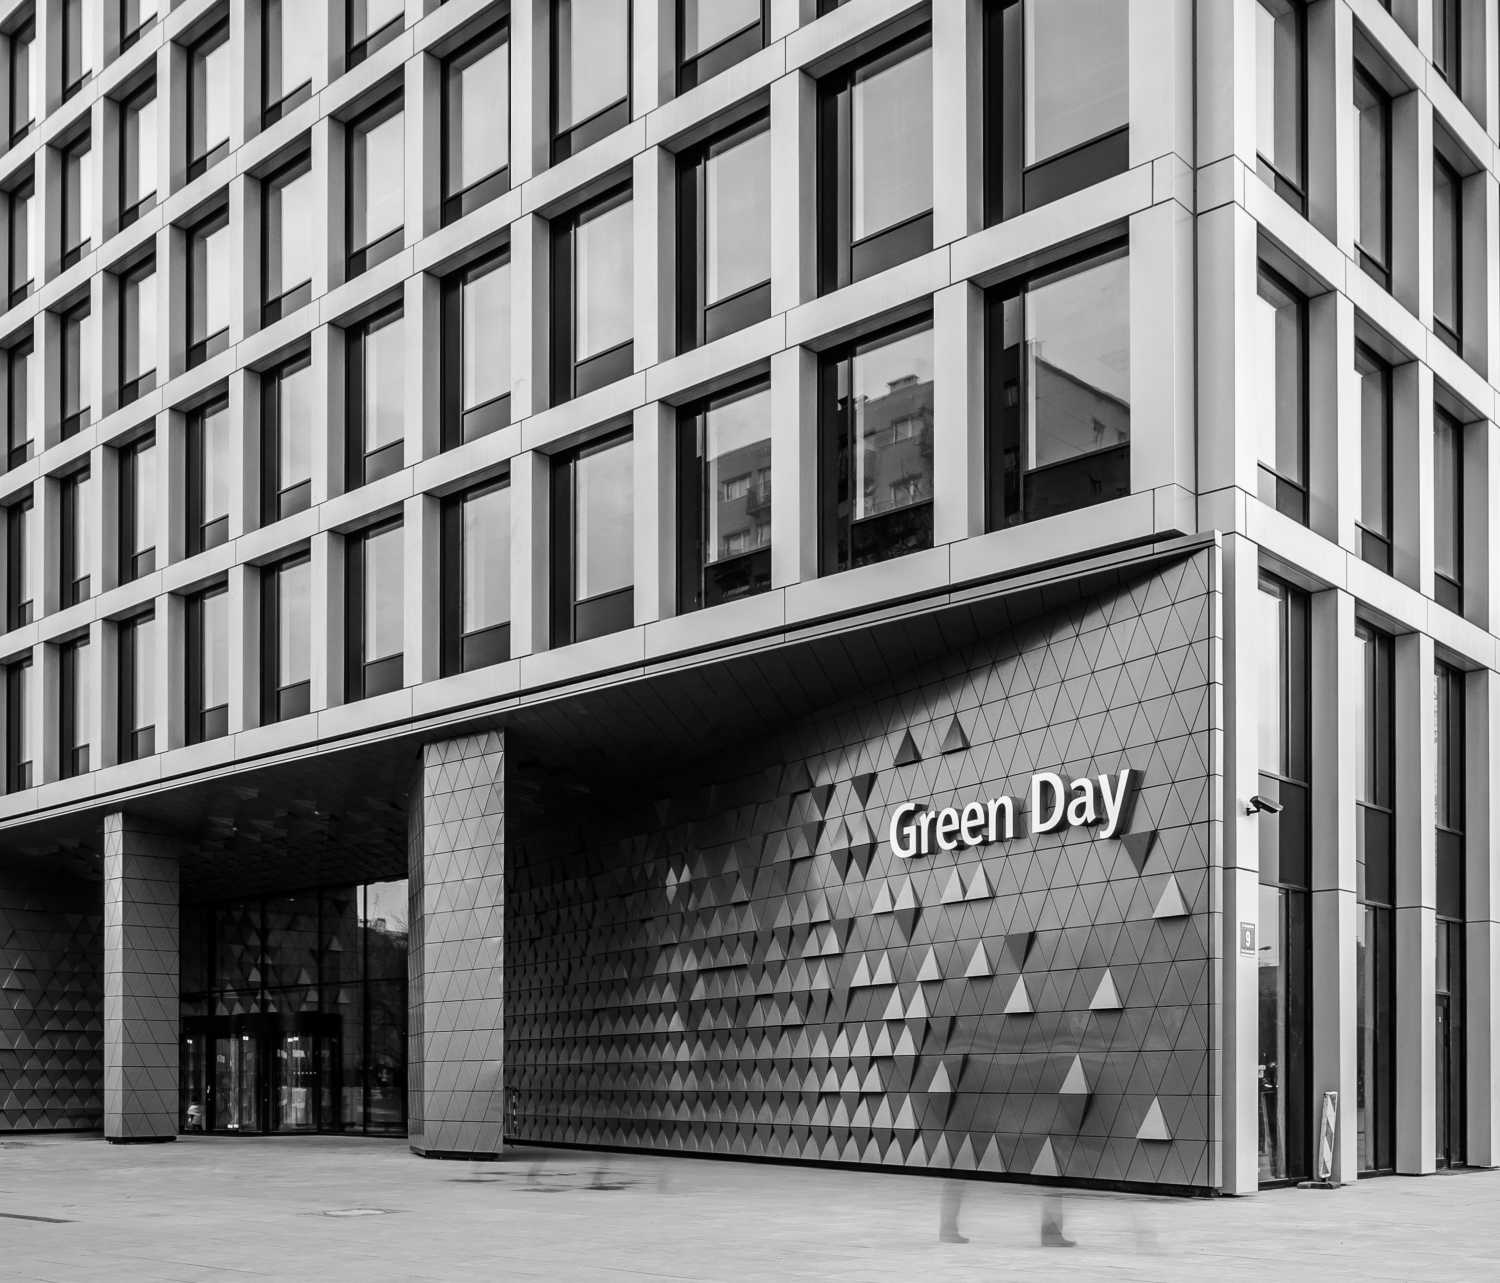 GREEN DAY & GREEN2DAY OFFICE AND RETAIL BUILDINGS Maciej Lulko